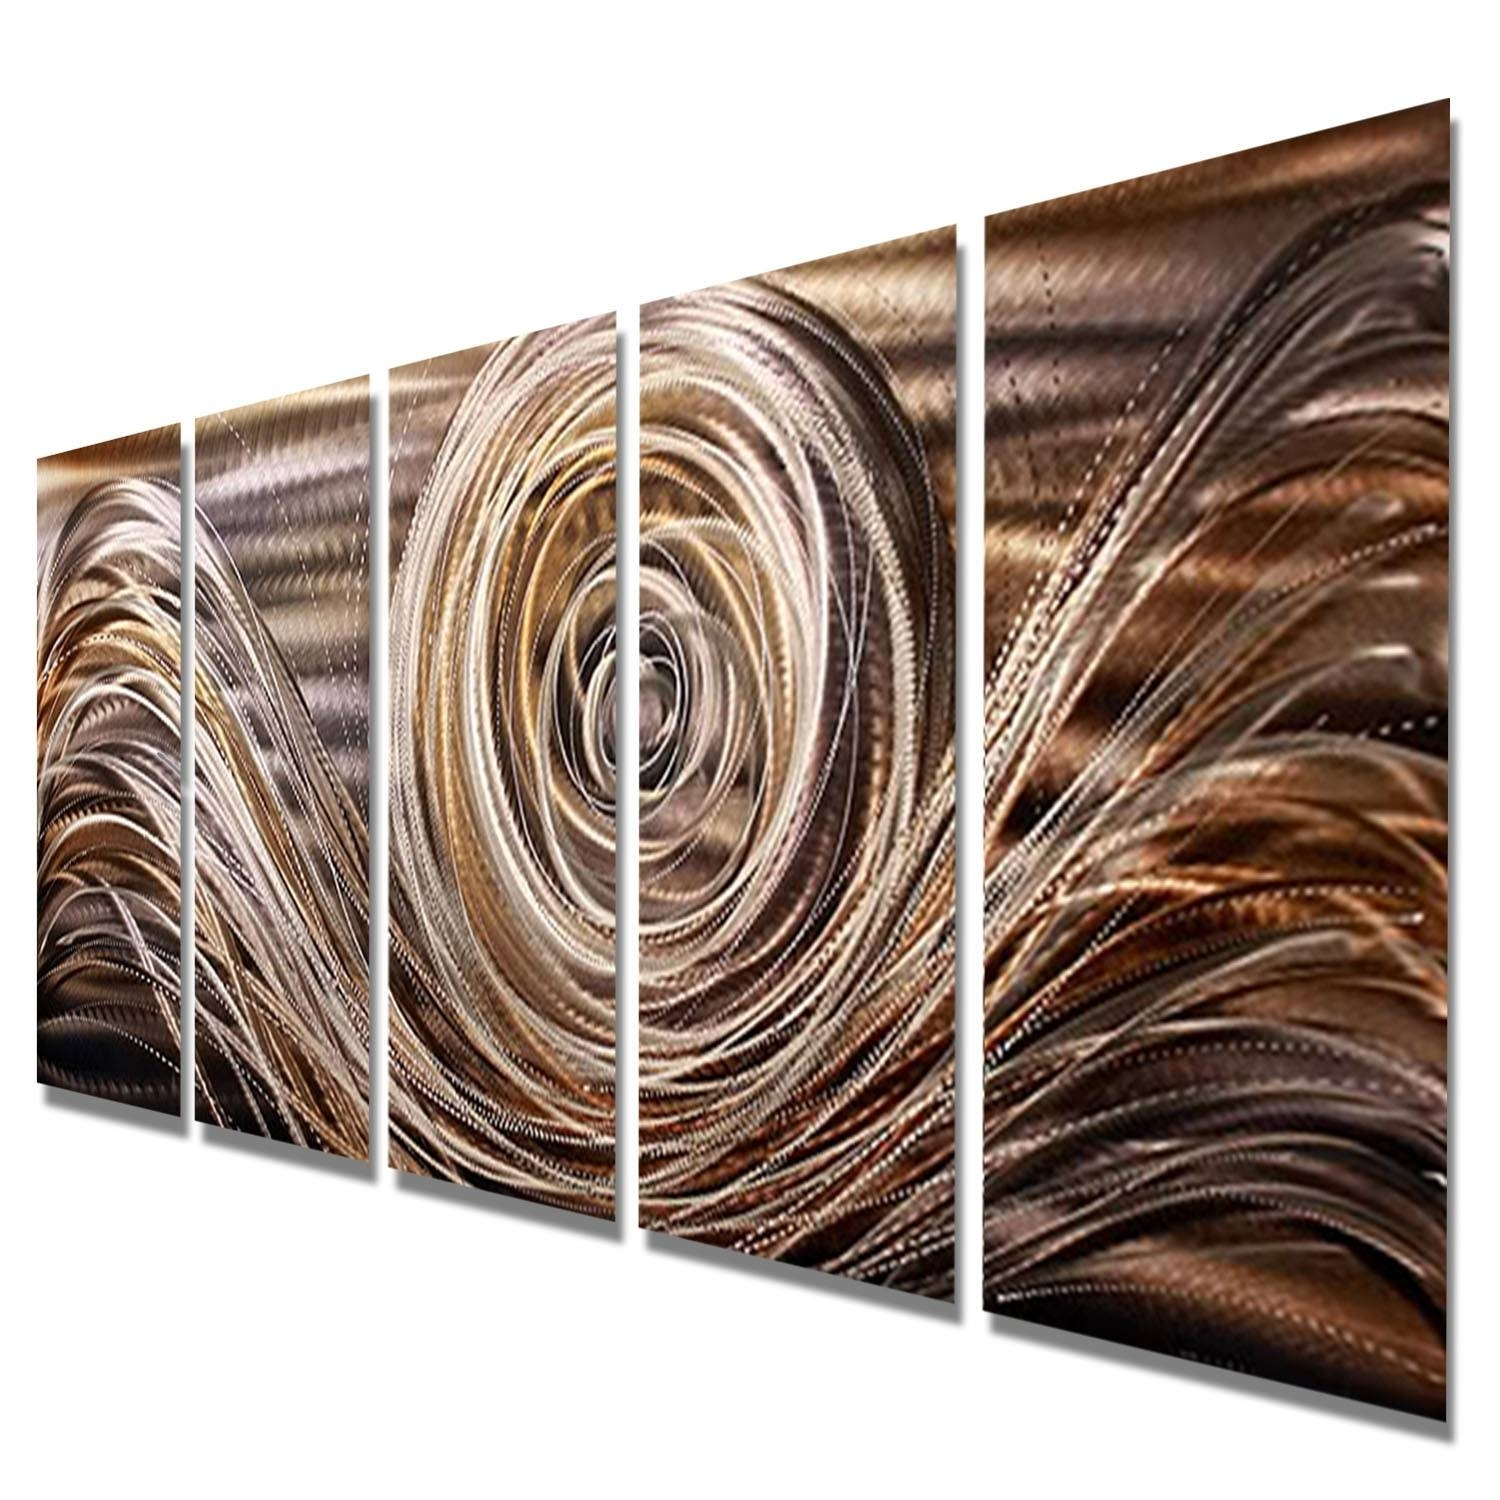 The Best Swirl Metal Wall Art Pertaining To Best And Newest Abstract Angkor Swirl Metal Wall Art (View 5 of 20)